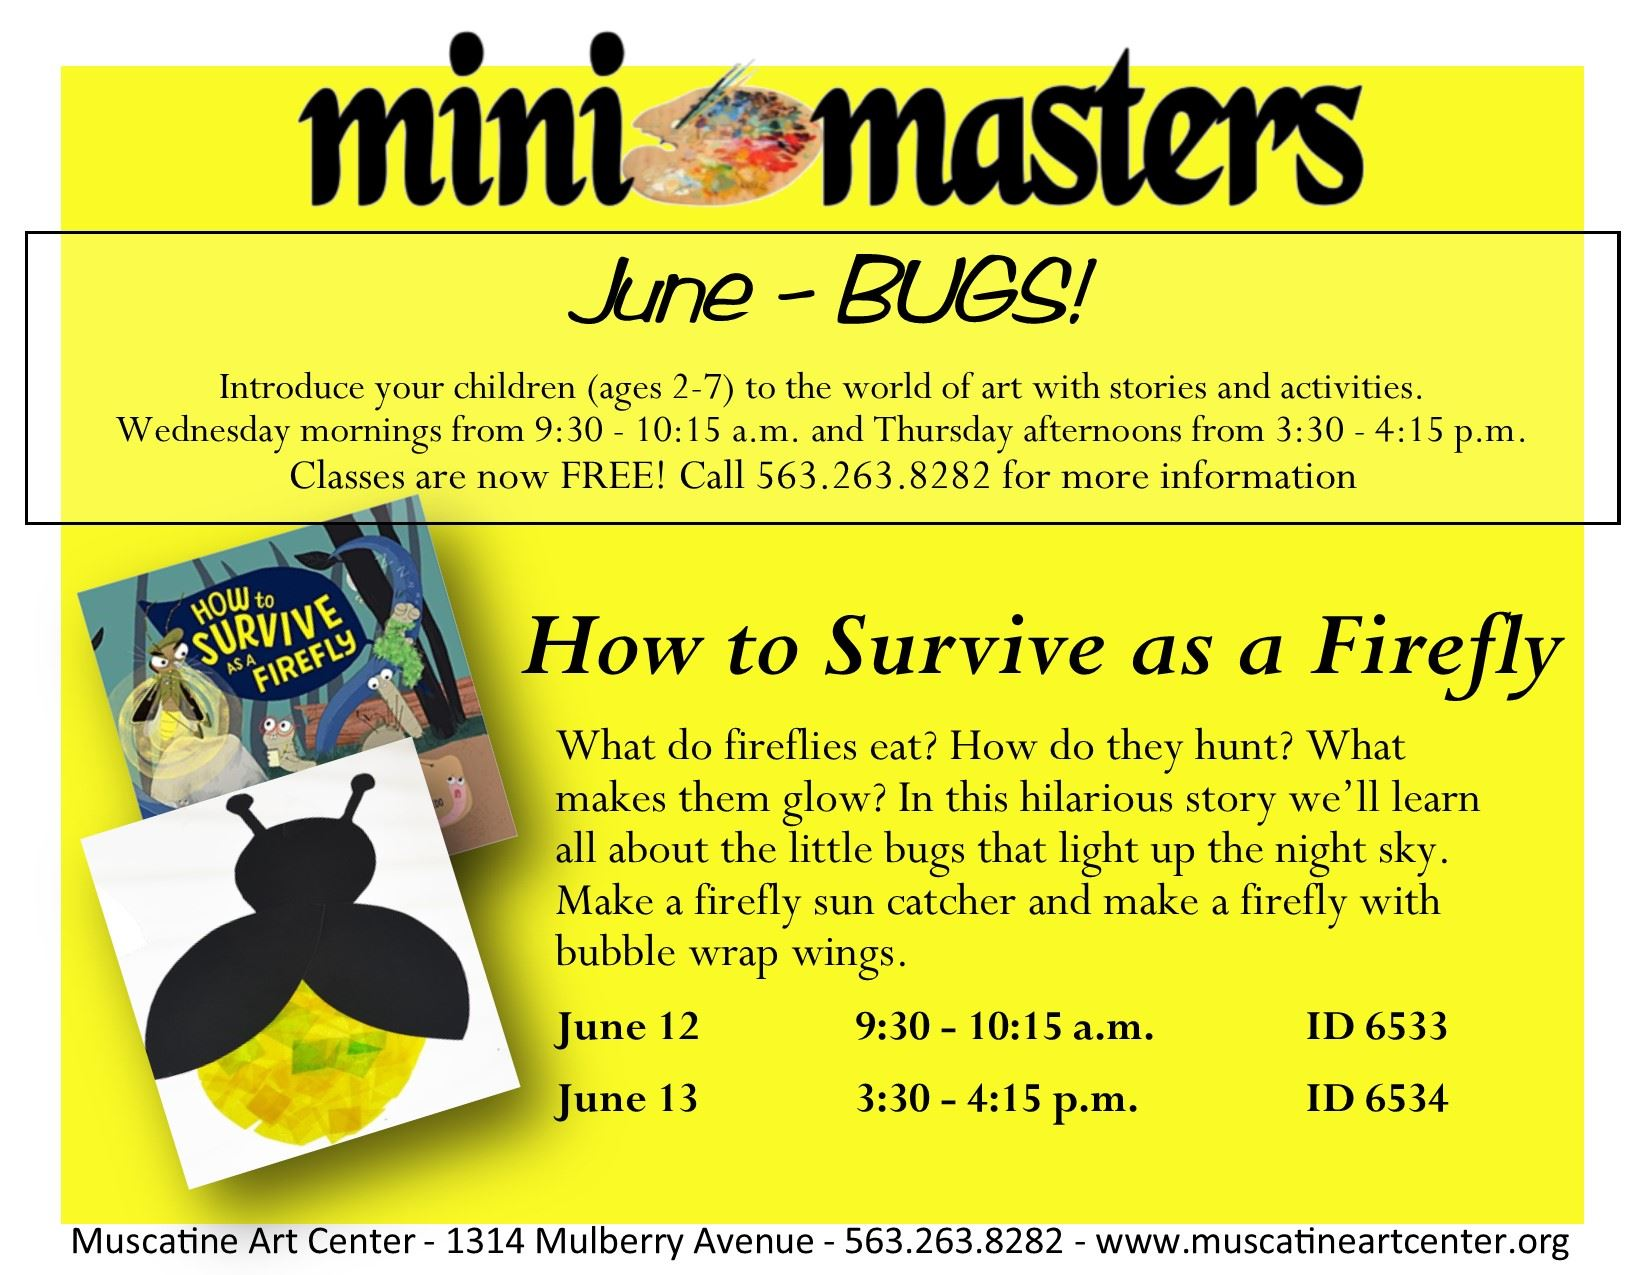 June 12-13 - How to Survive as a firefly - mini masters